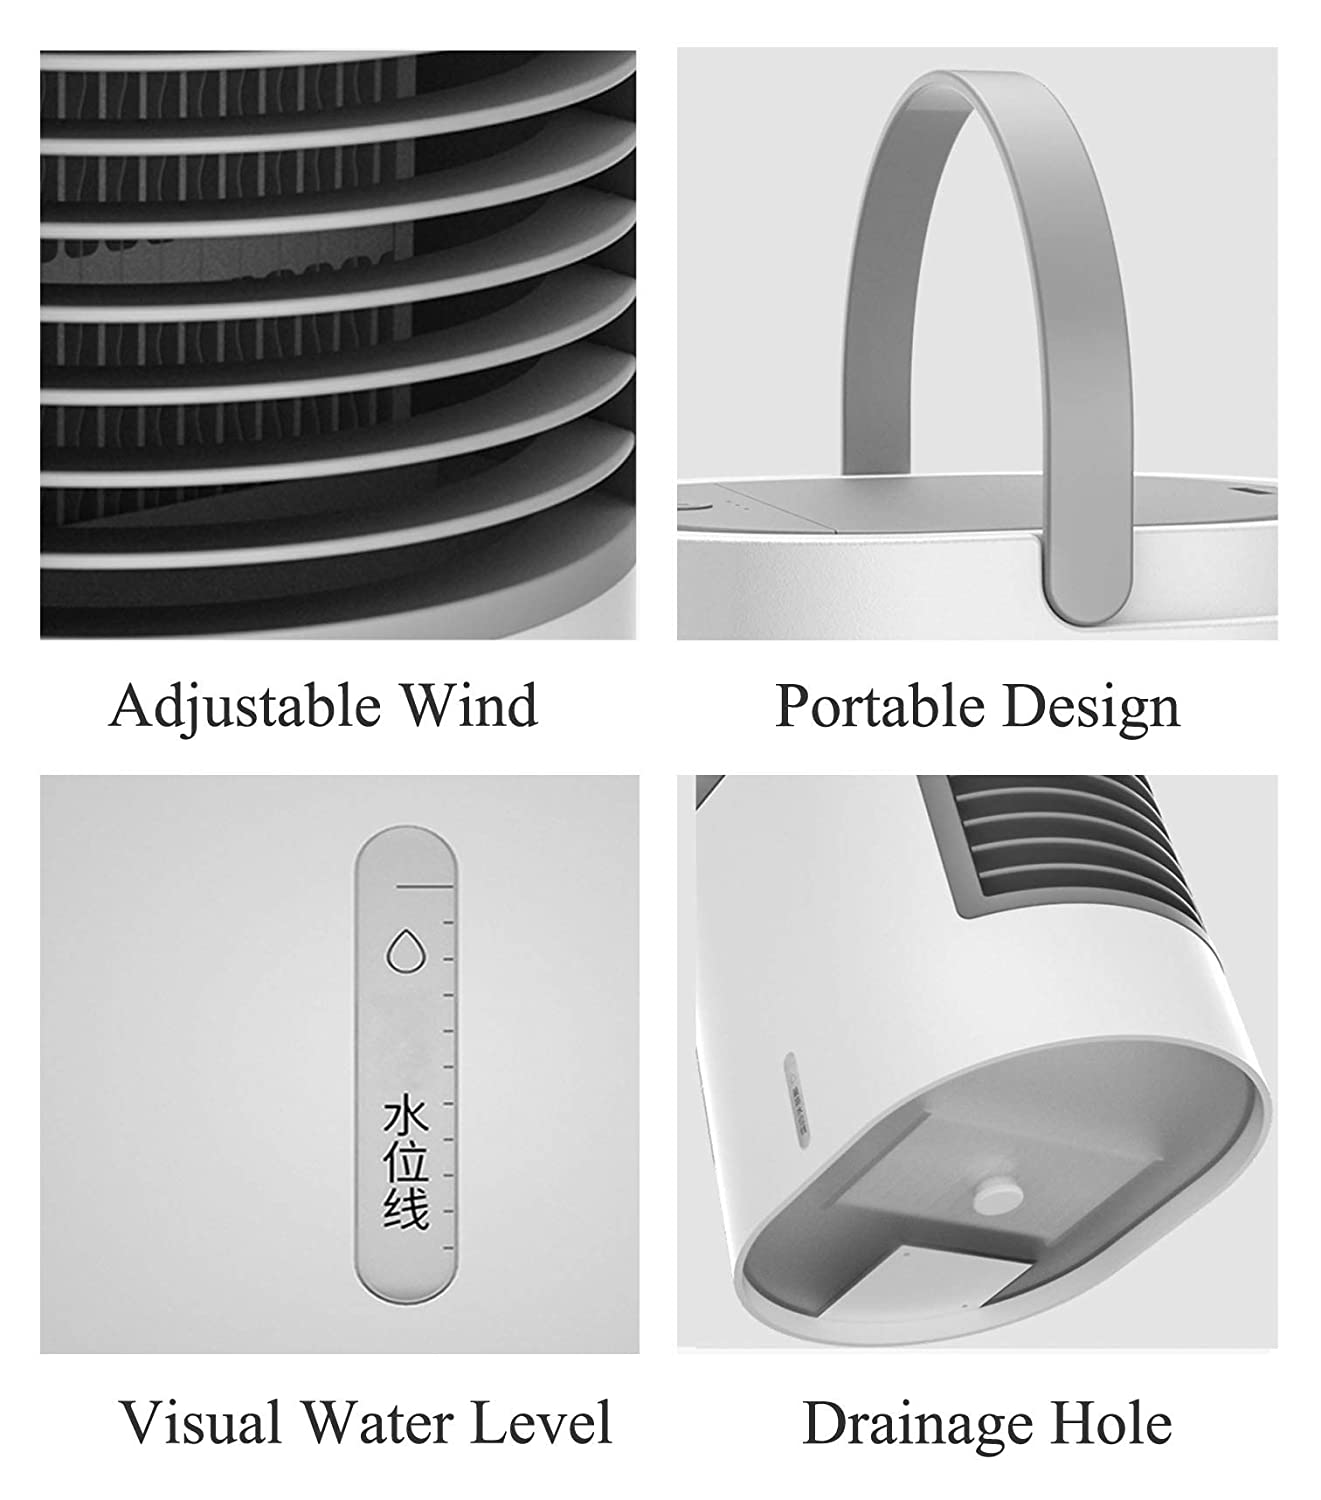 UCMDA Mini Air Cooler Bedroom Mini Air Cooling Fan with Water Tank 3 Speed 7 LED Lights for Home Personal Space USB Portable Air Conditioner Office Travel